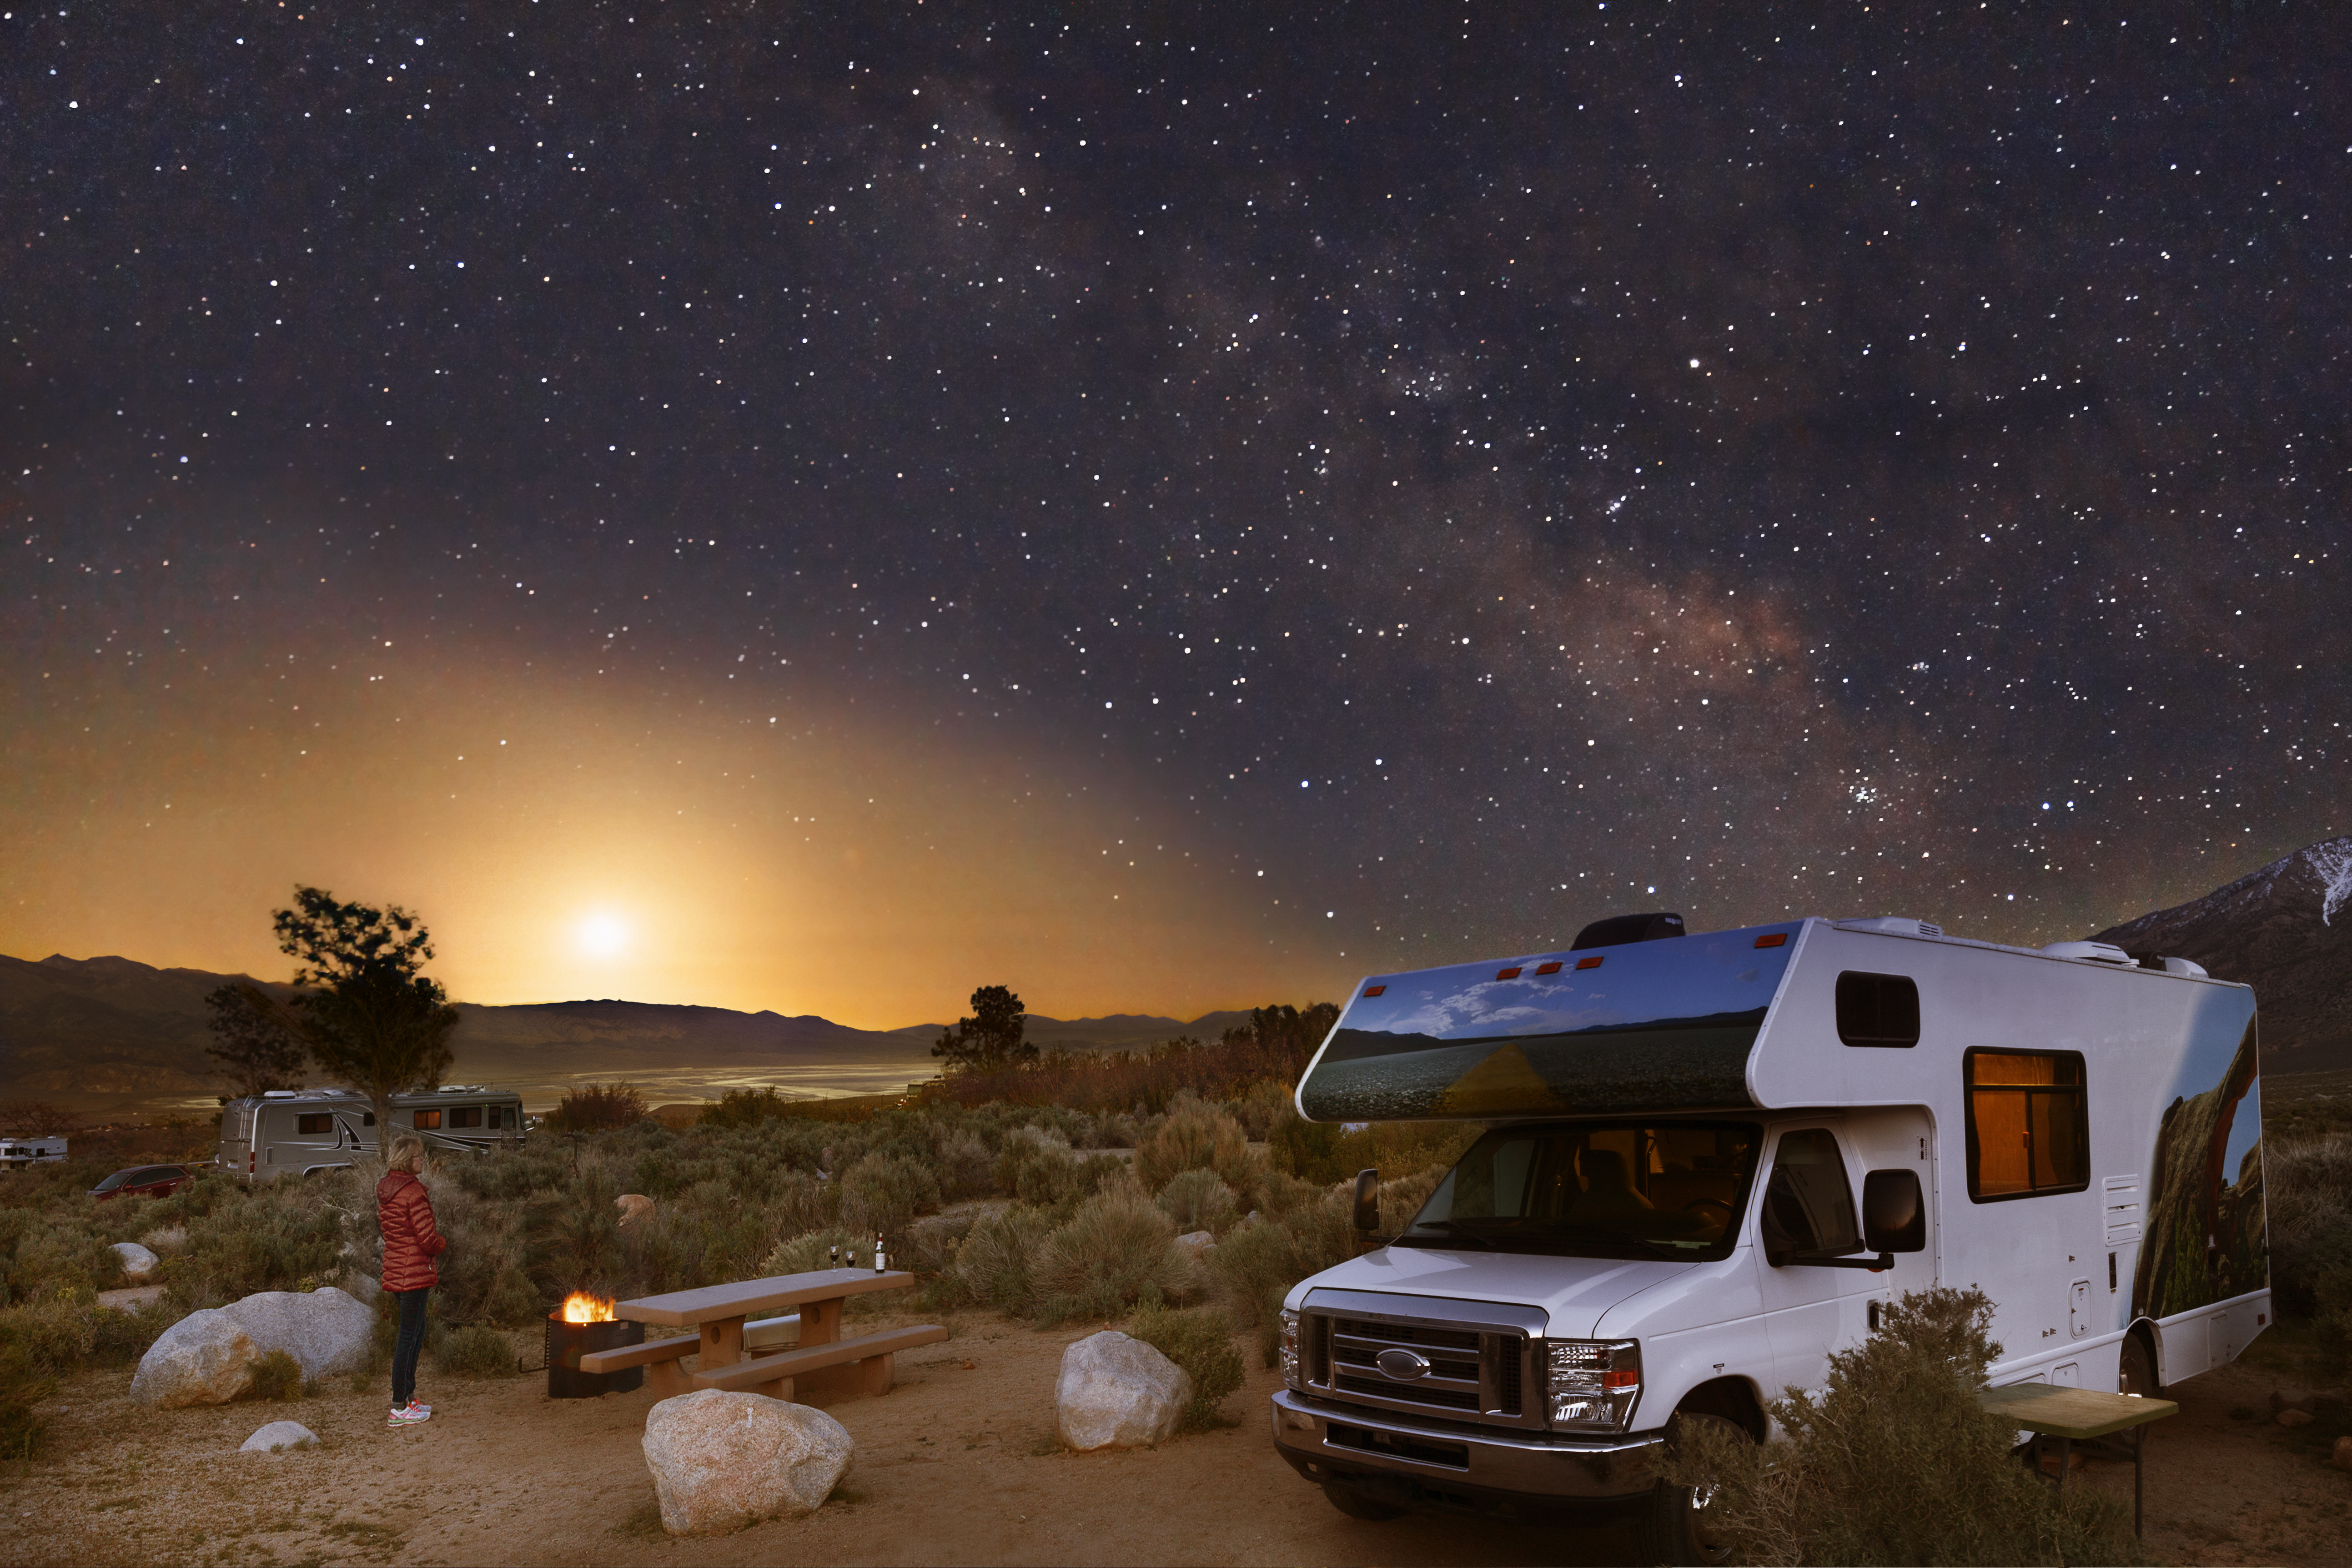 Camping in a national park with Cruise America RV during the night while stargazing